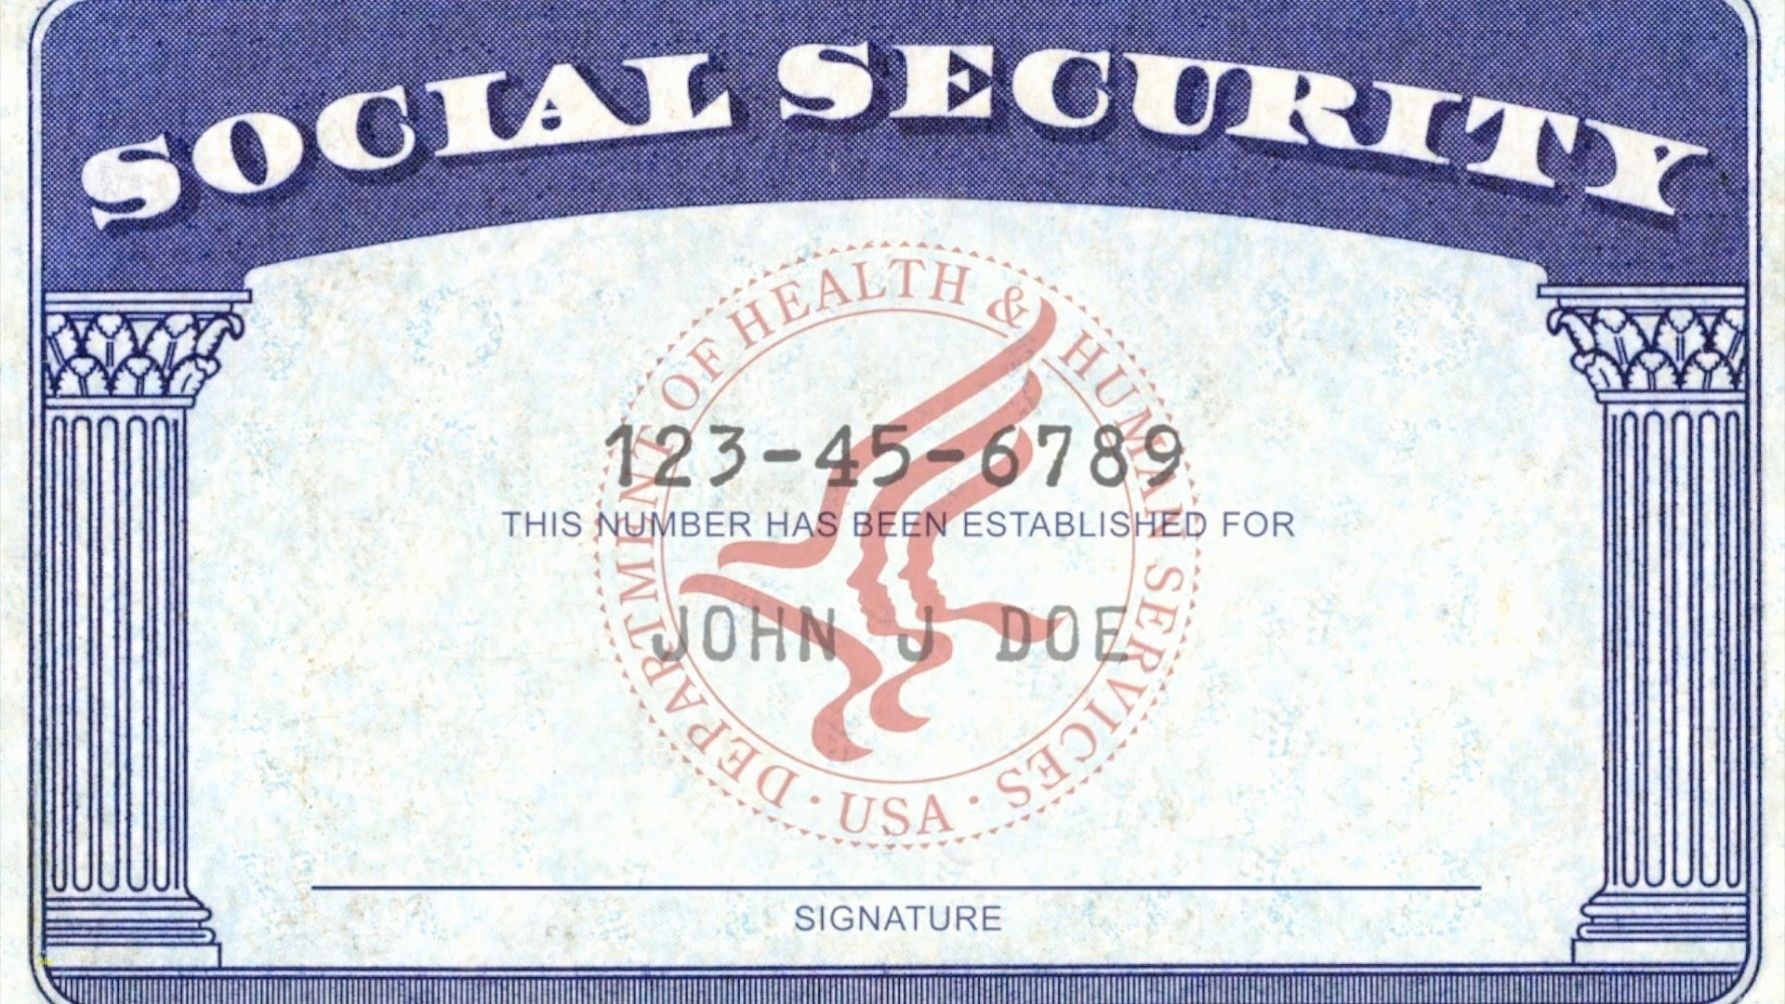 How Long Does It Take To Get My Social Security Card In The Mail